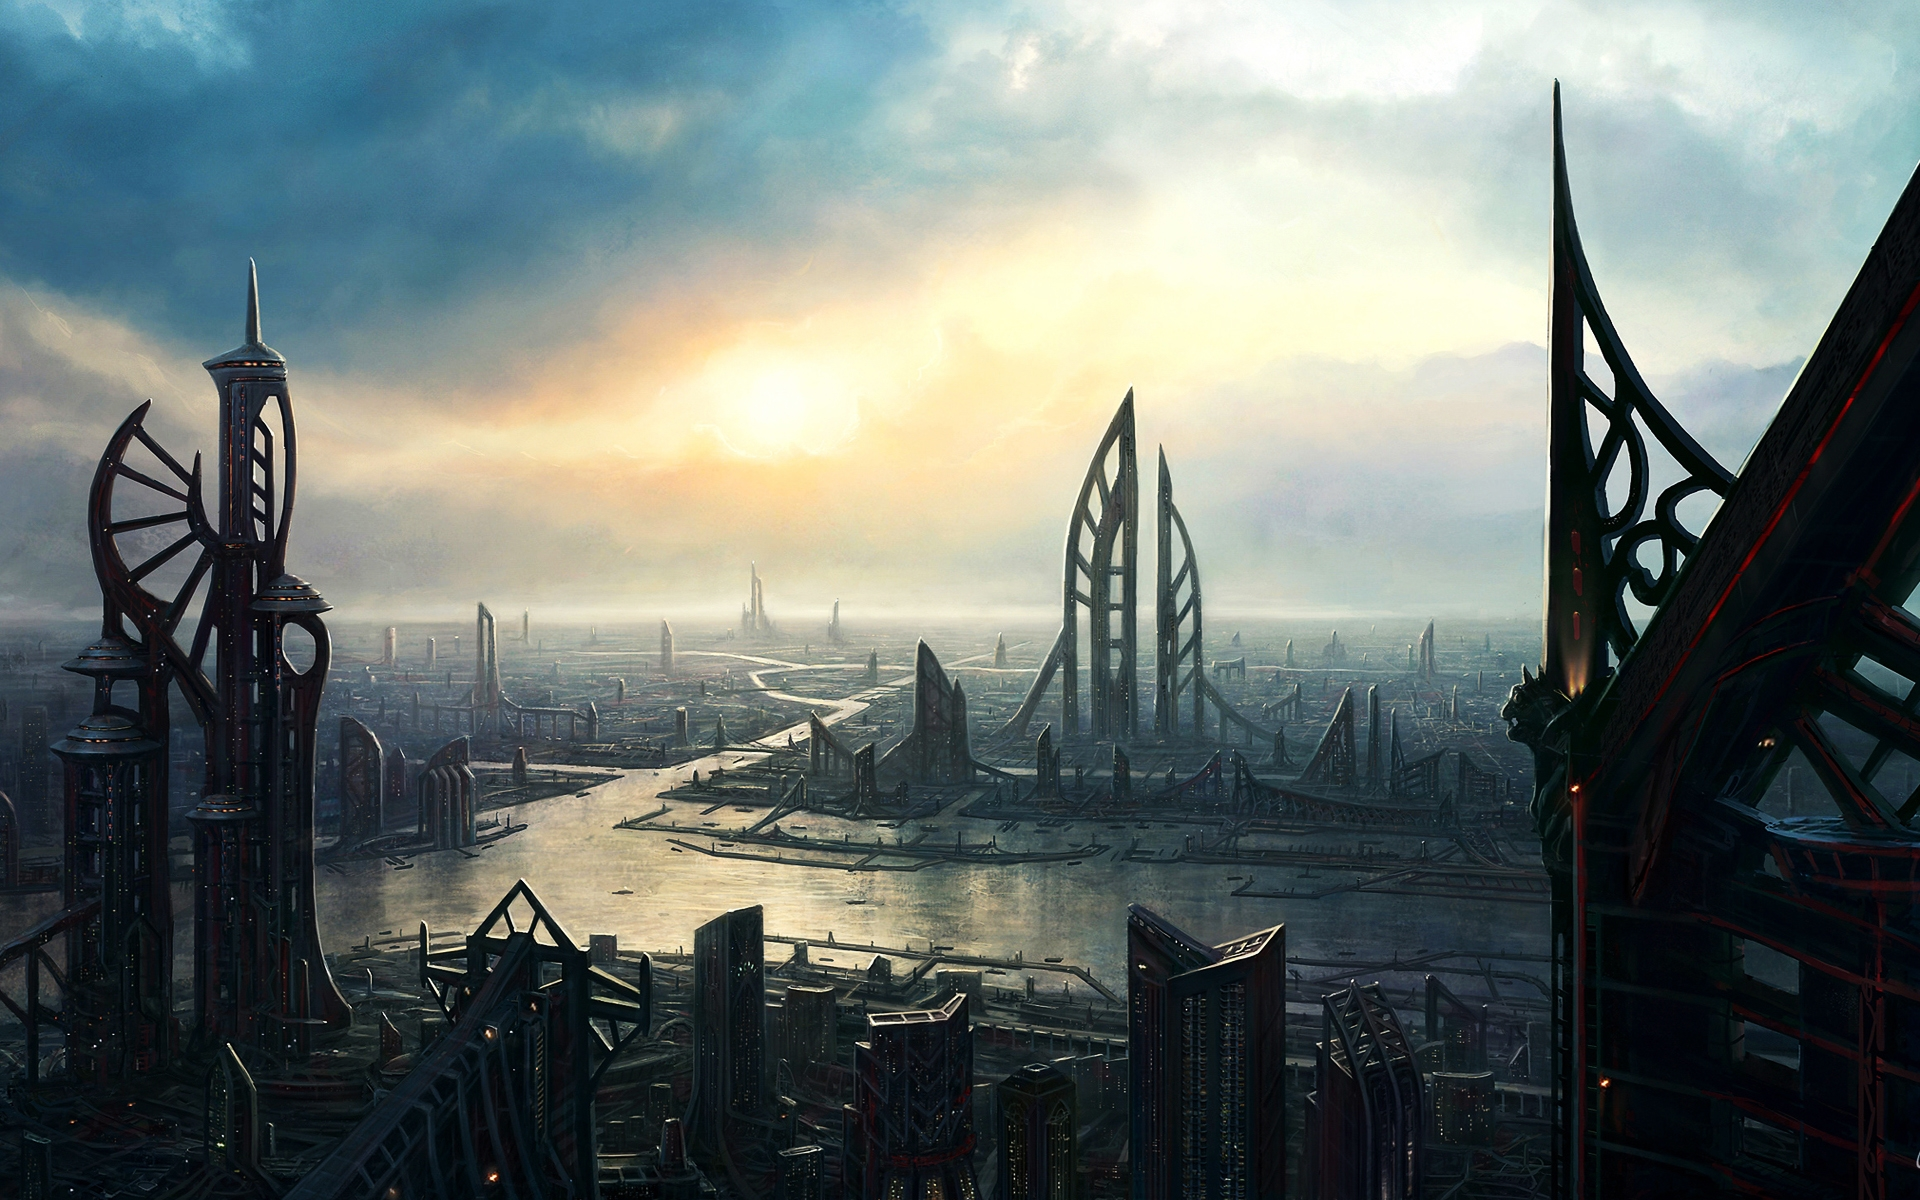 Stunning Epic Wallpapers and Desktop Backgrounds 1920x1200